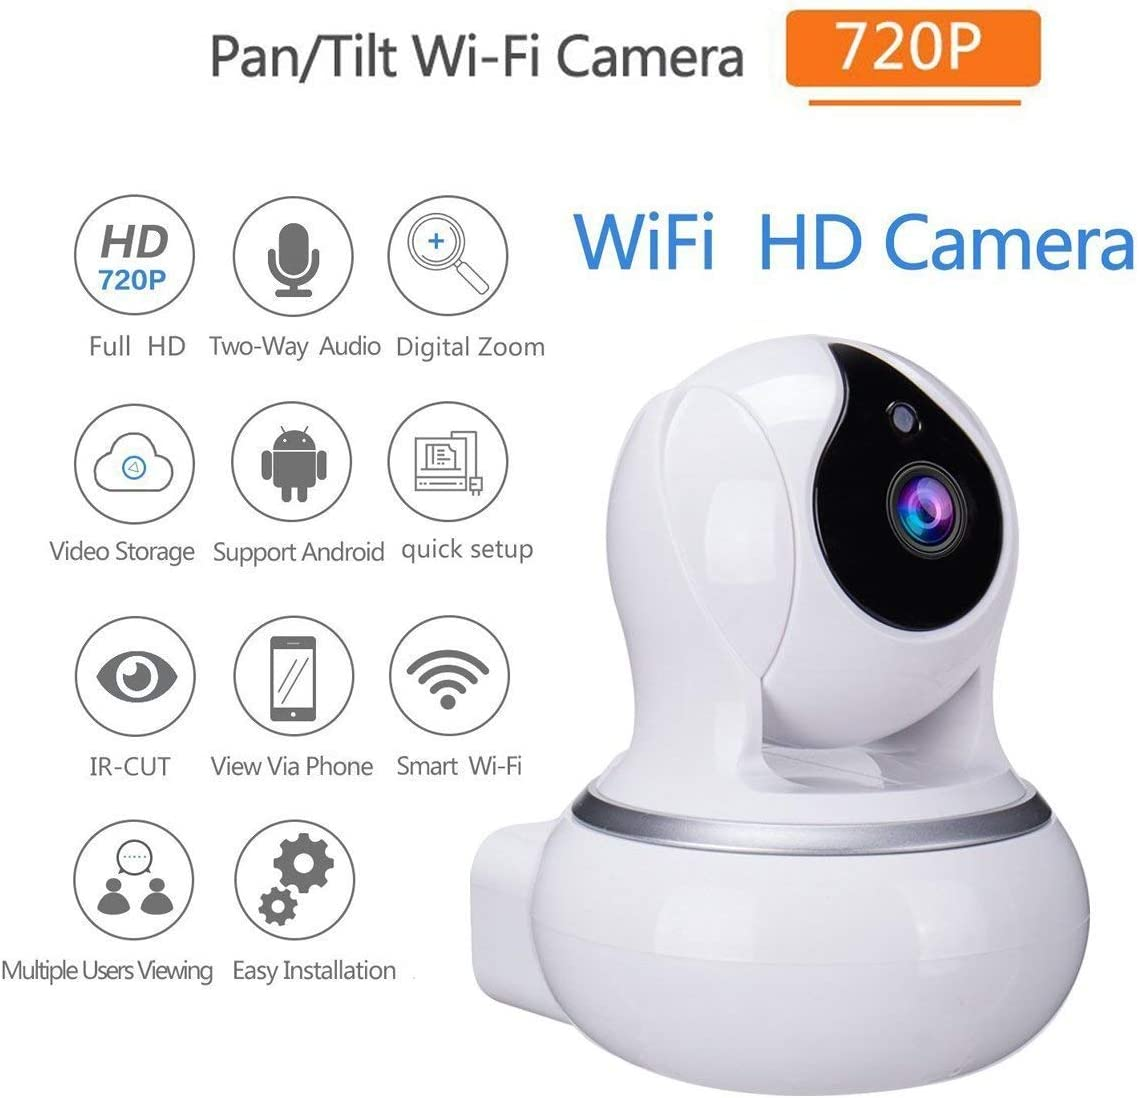 Home Security Camera 720P HD WiFi IP Camera Wireless Surveillance Camera System with Two Way Audio Remote Indoor Night Vision Great As A Baby Pet Monitor